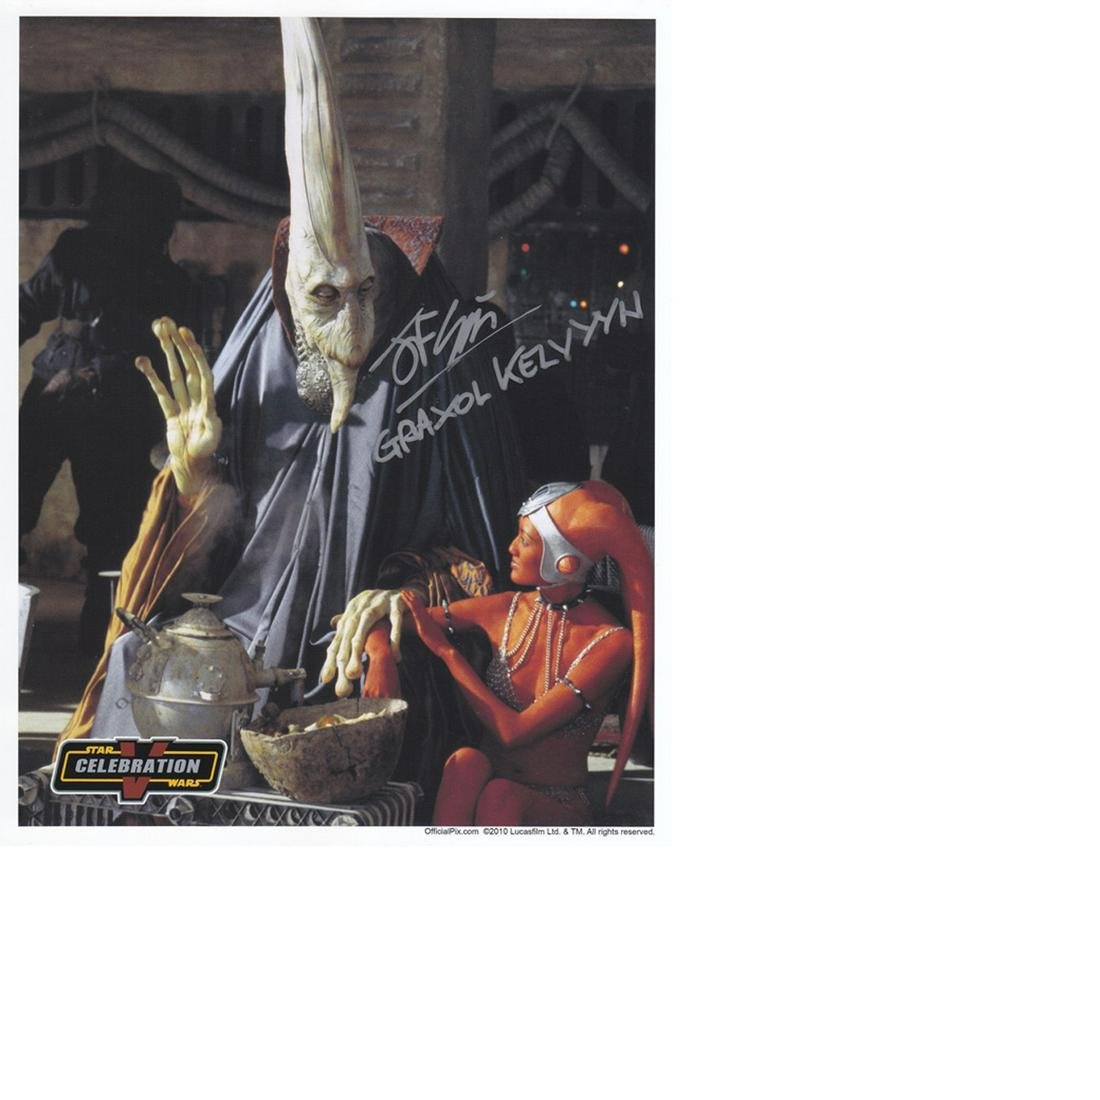 John Coppinger Star Wars hand signed 10x8 photo. This